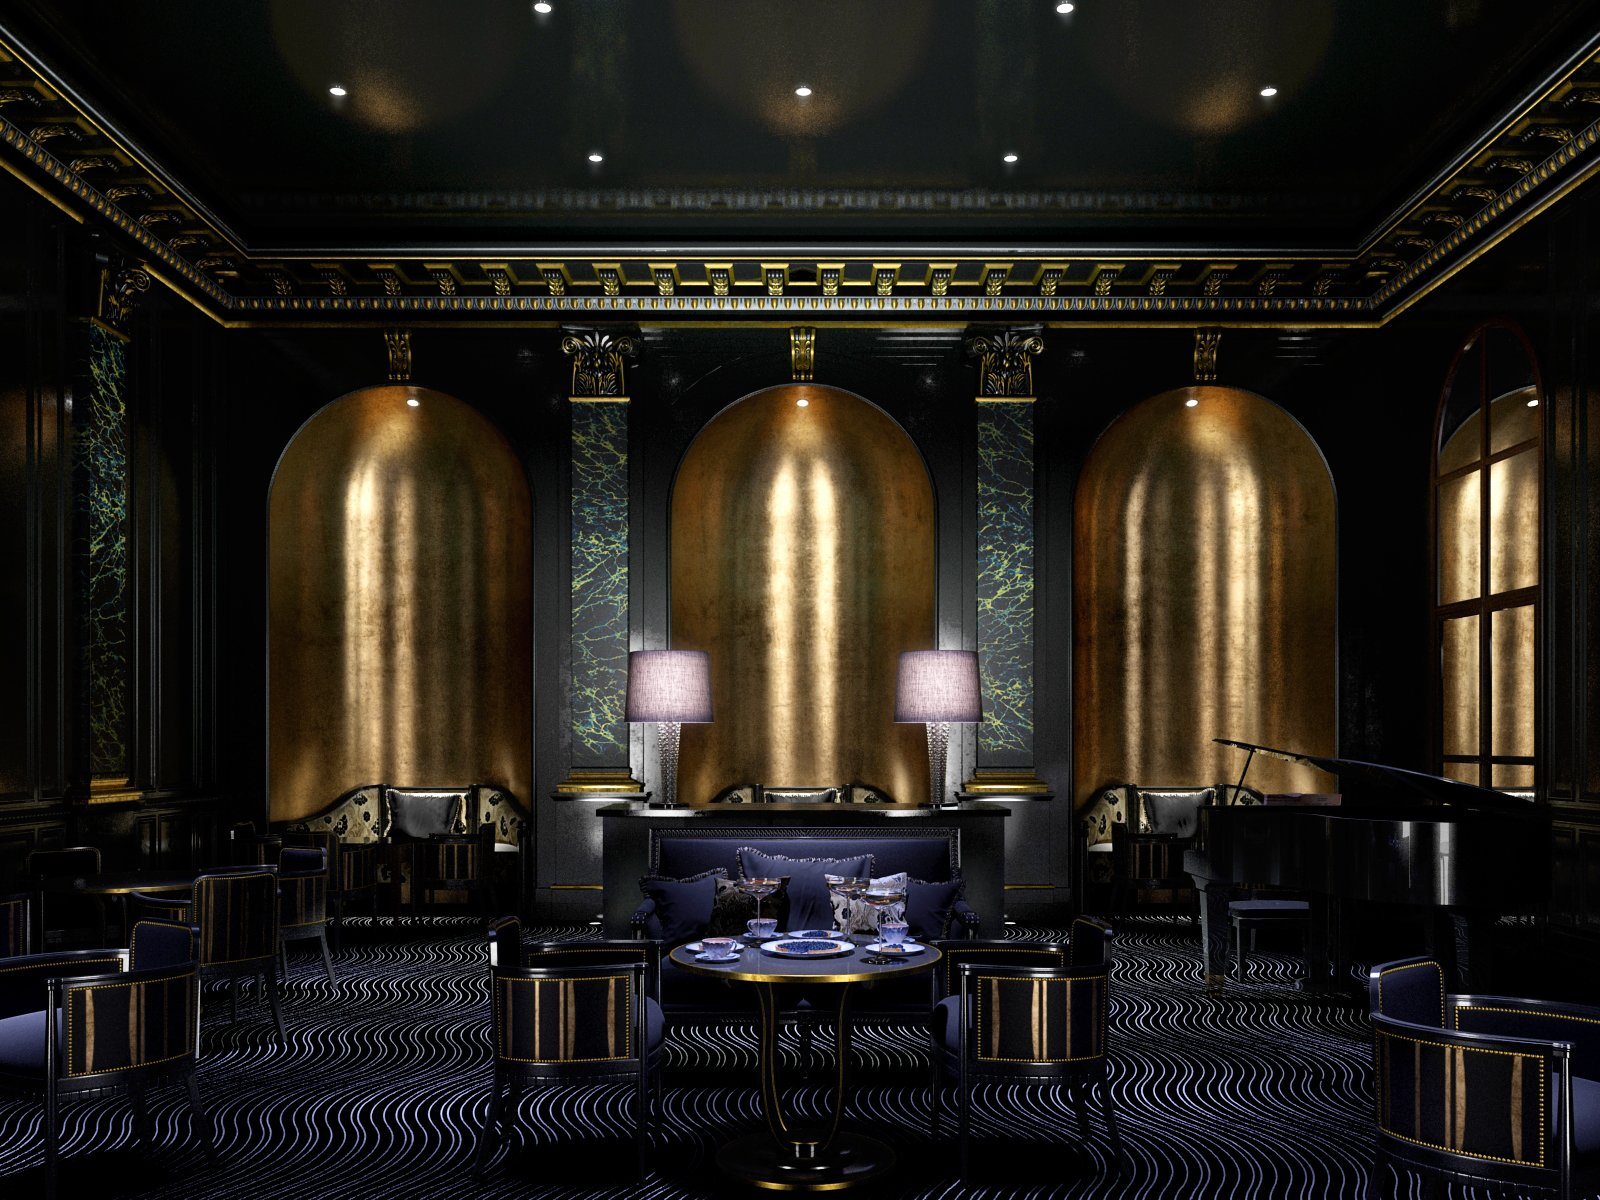 Pierre Yves Rochon Pyr Shortlisted Hotel 50 200 Rooms Award moreover Art Deco Room Design likewise Art Deco House also 1930s Auto Design Art Deco And Streamline Moderne additionally Acne Studios Store By Bozarthfornell Architects Los Angeles California. on 1930s art deco interior design